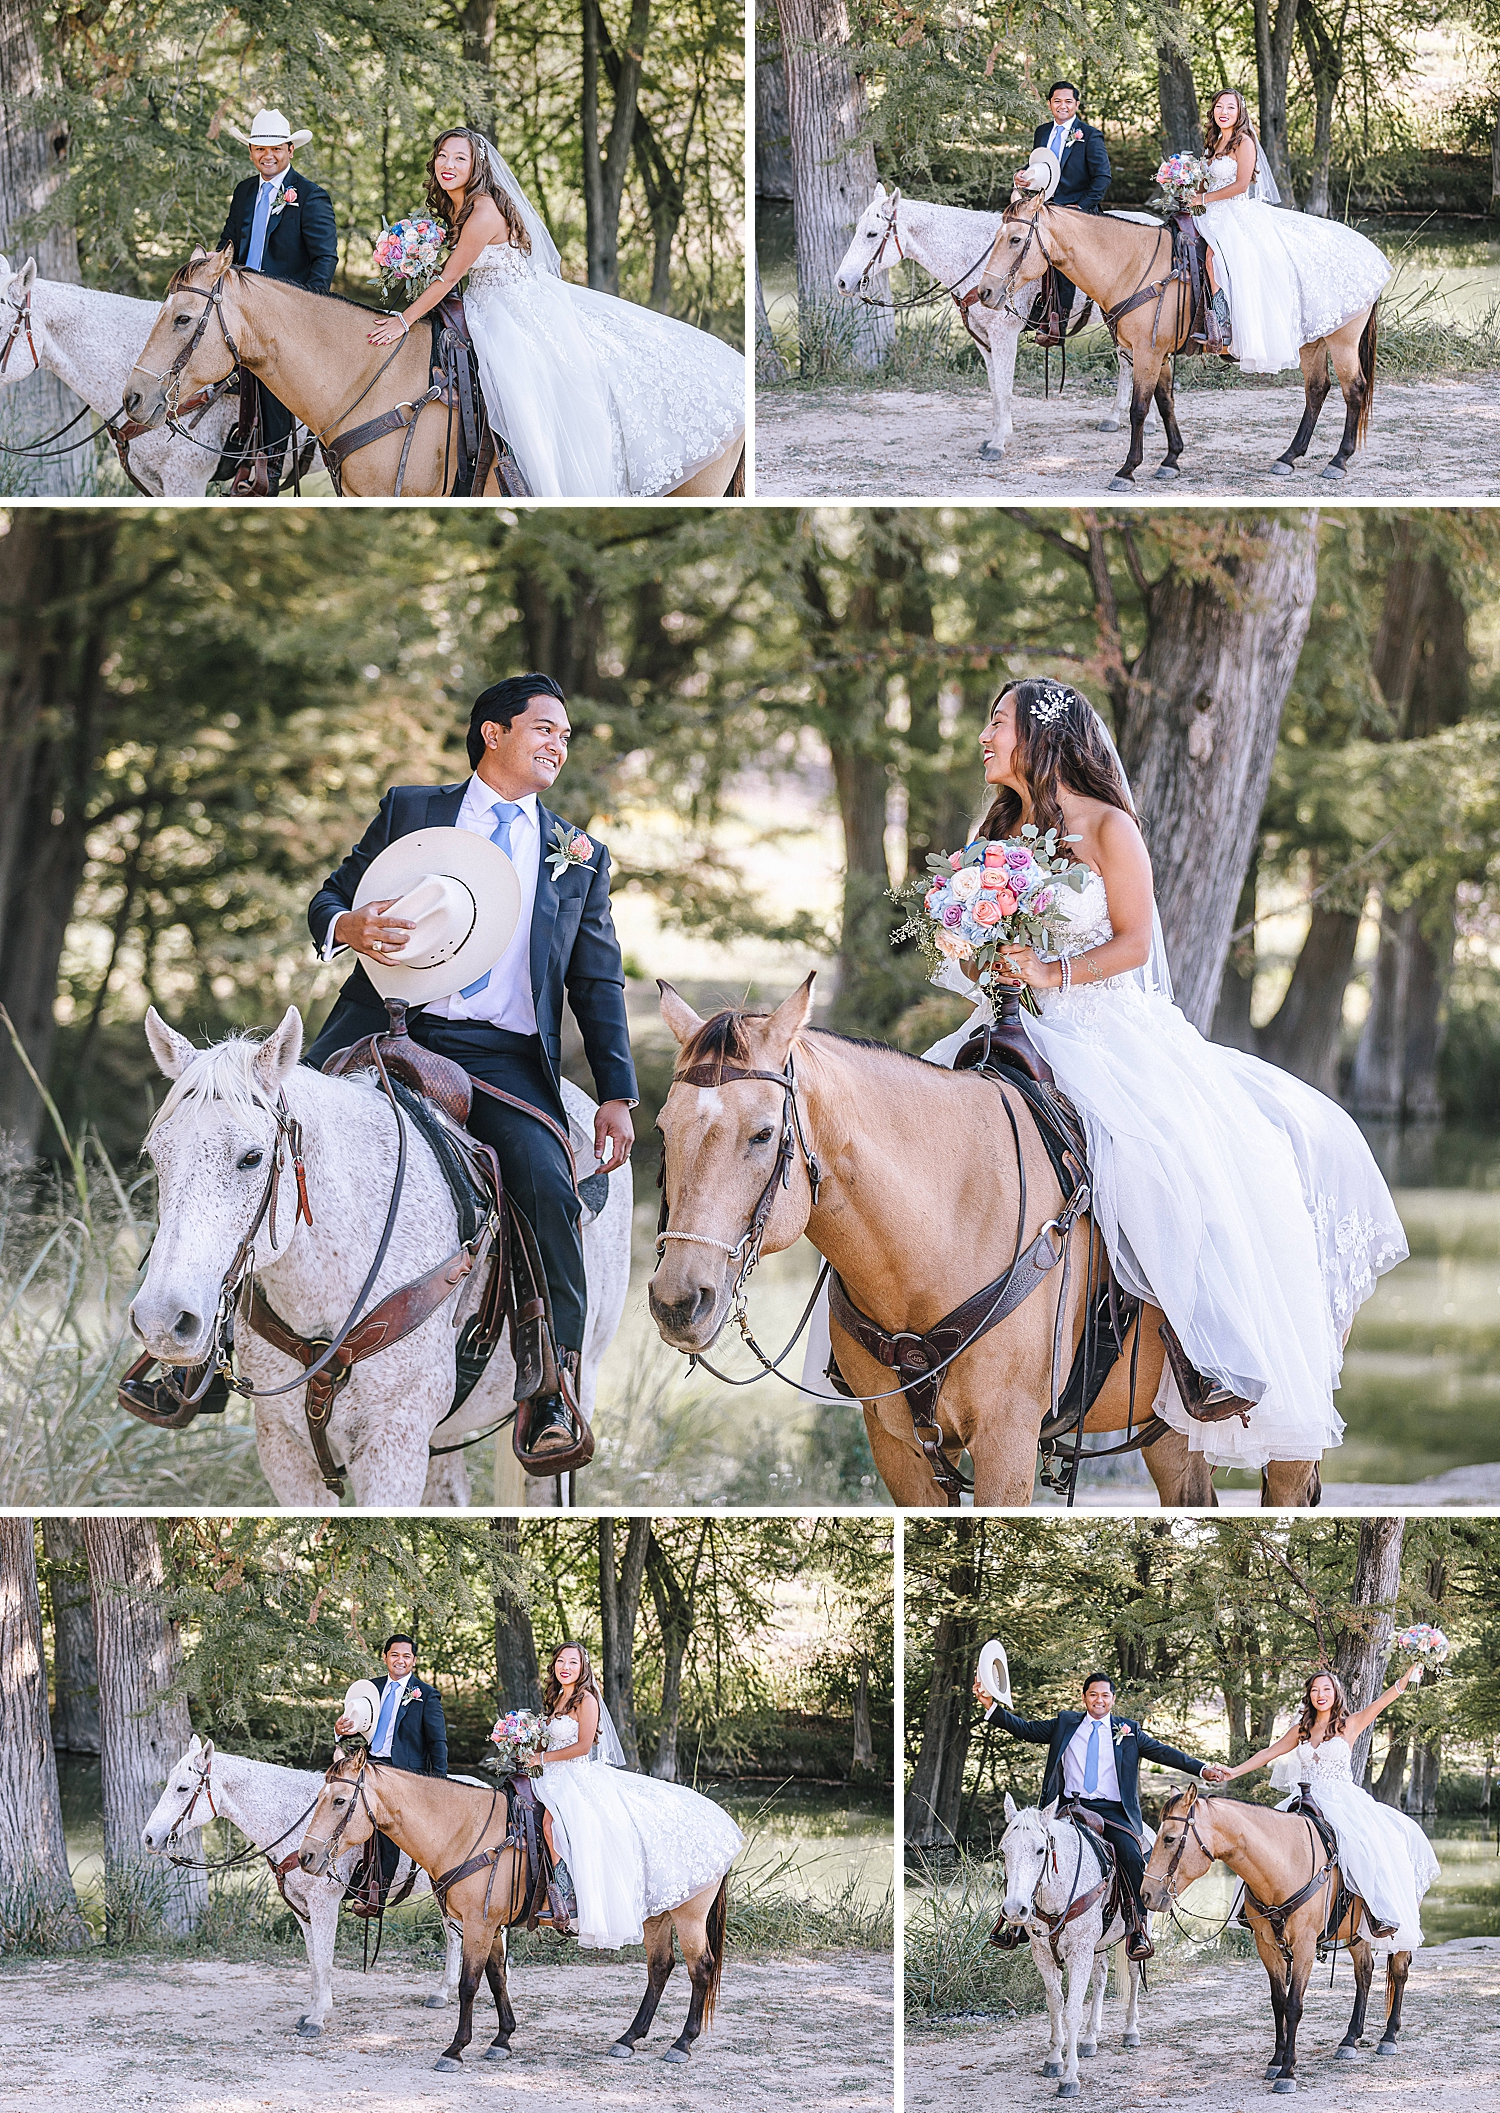 Bandera-Texas-Wedding-Photographer-Bride-Groom-on-Horses-Carly-Barton-Photography_0028.jpg